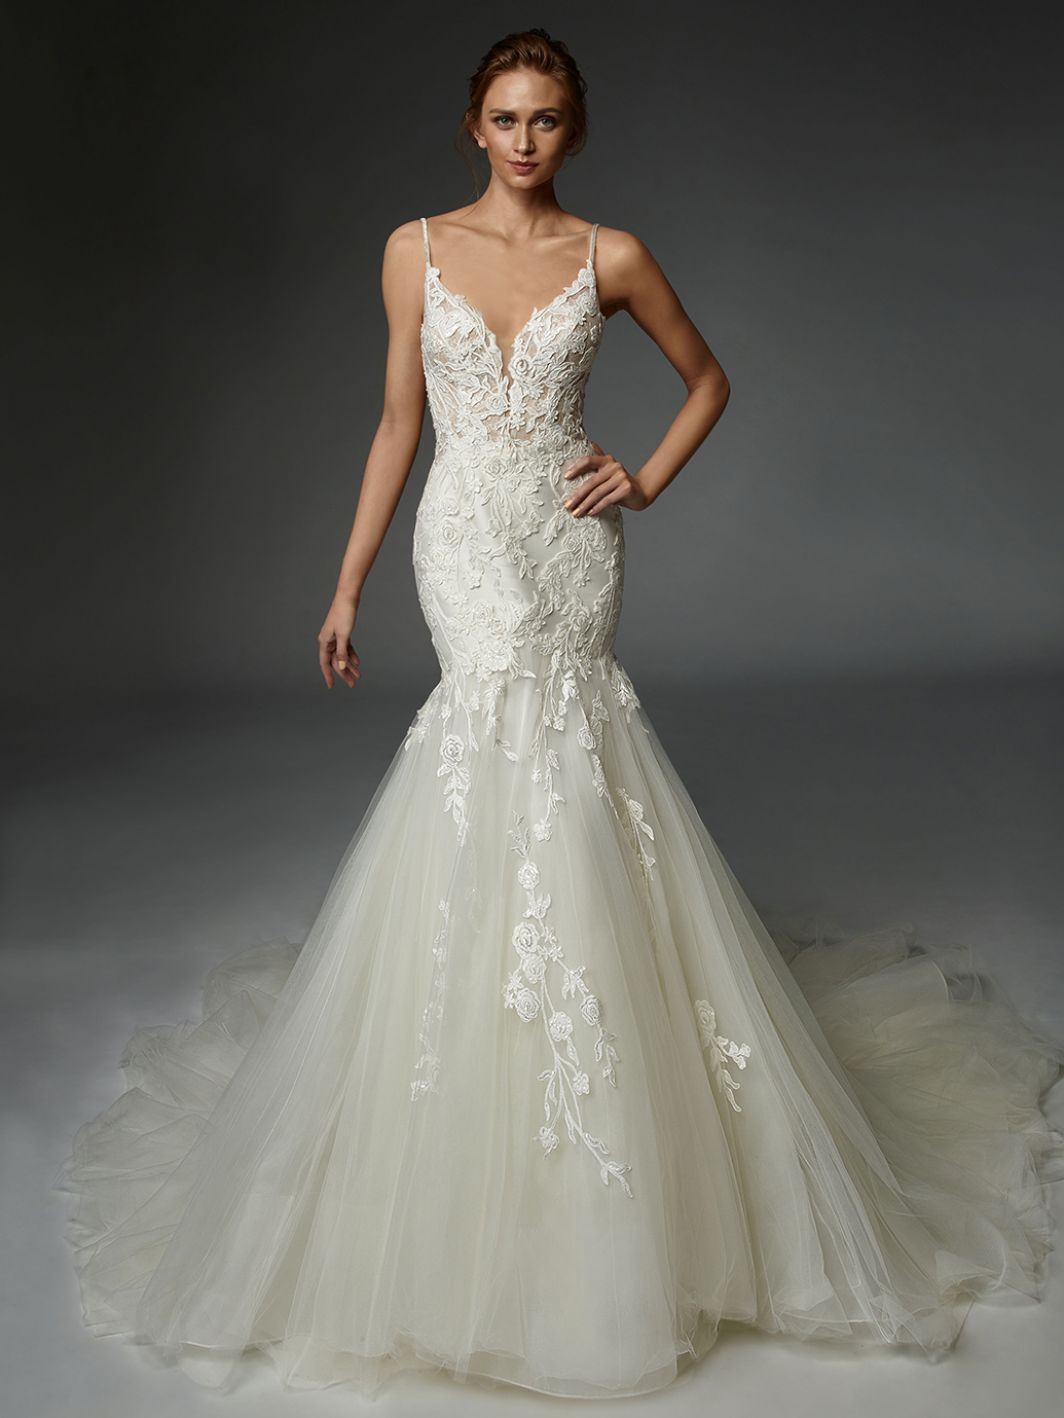 Alexandre - New, Gown, Élysée by Enzoani - Eternal Bridal